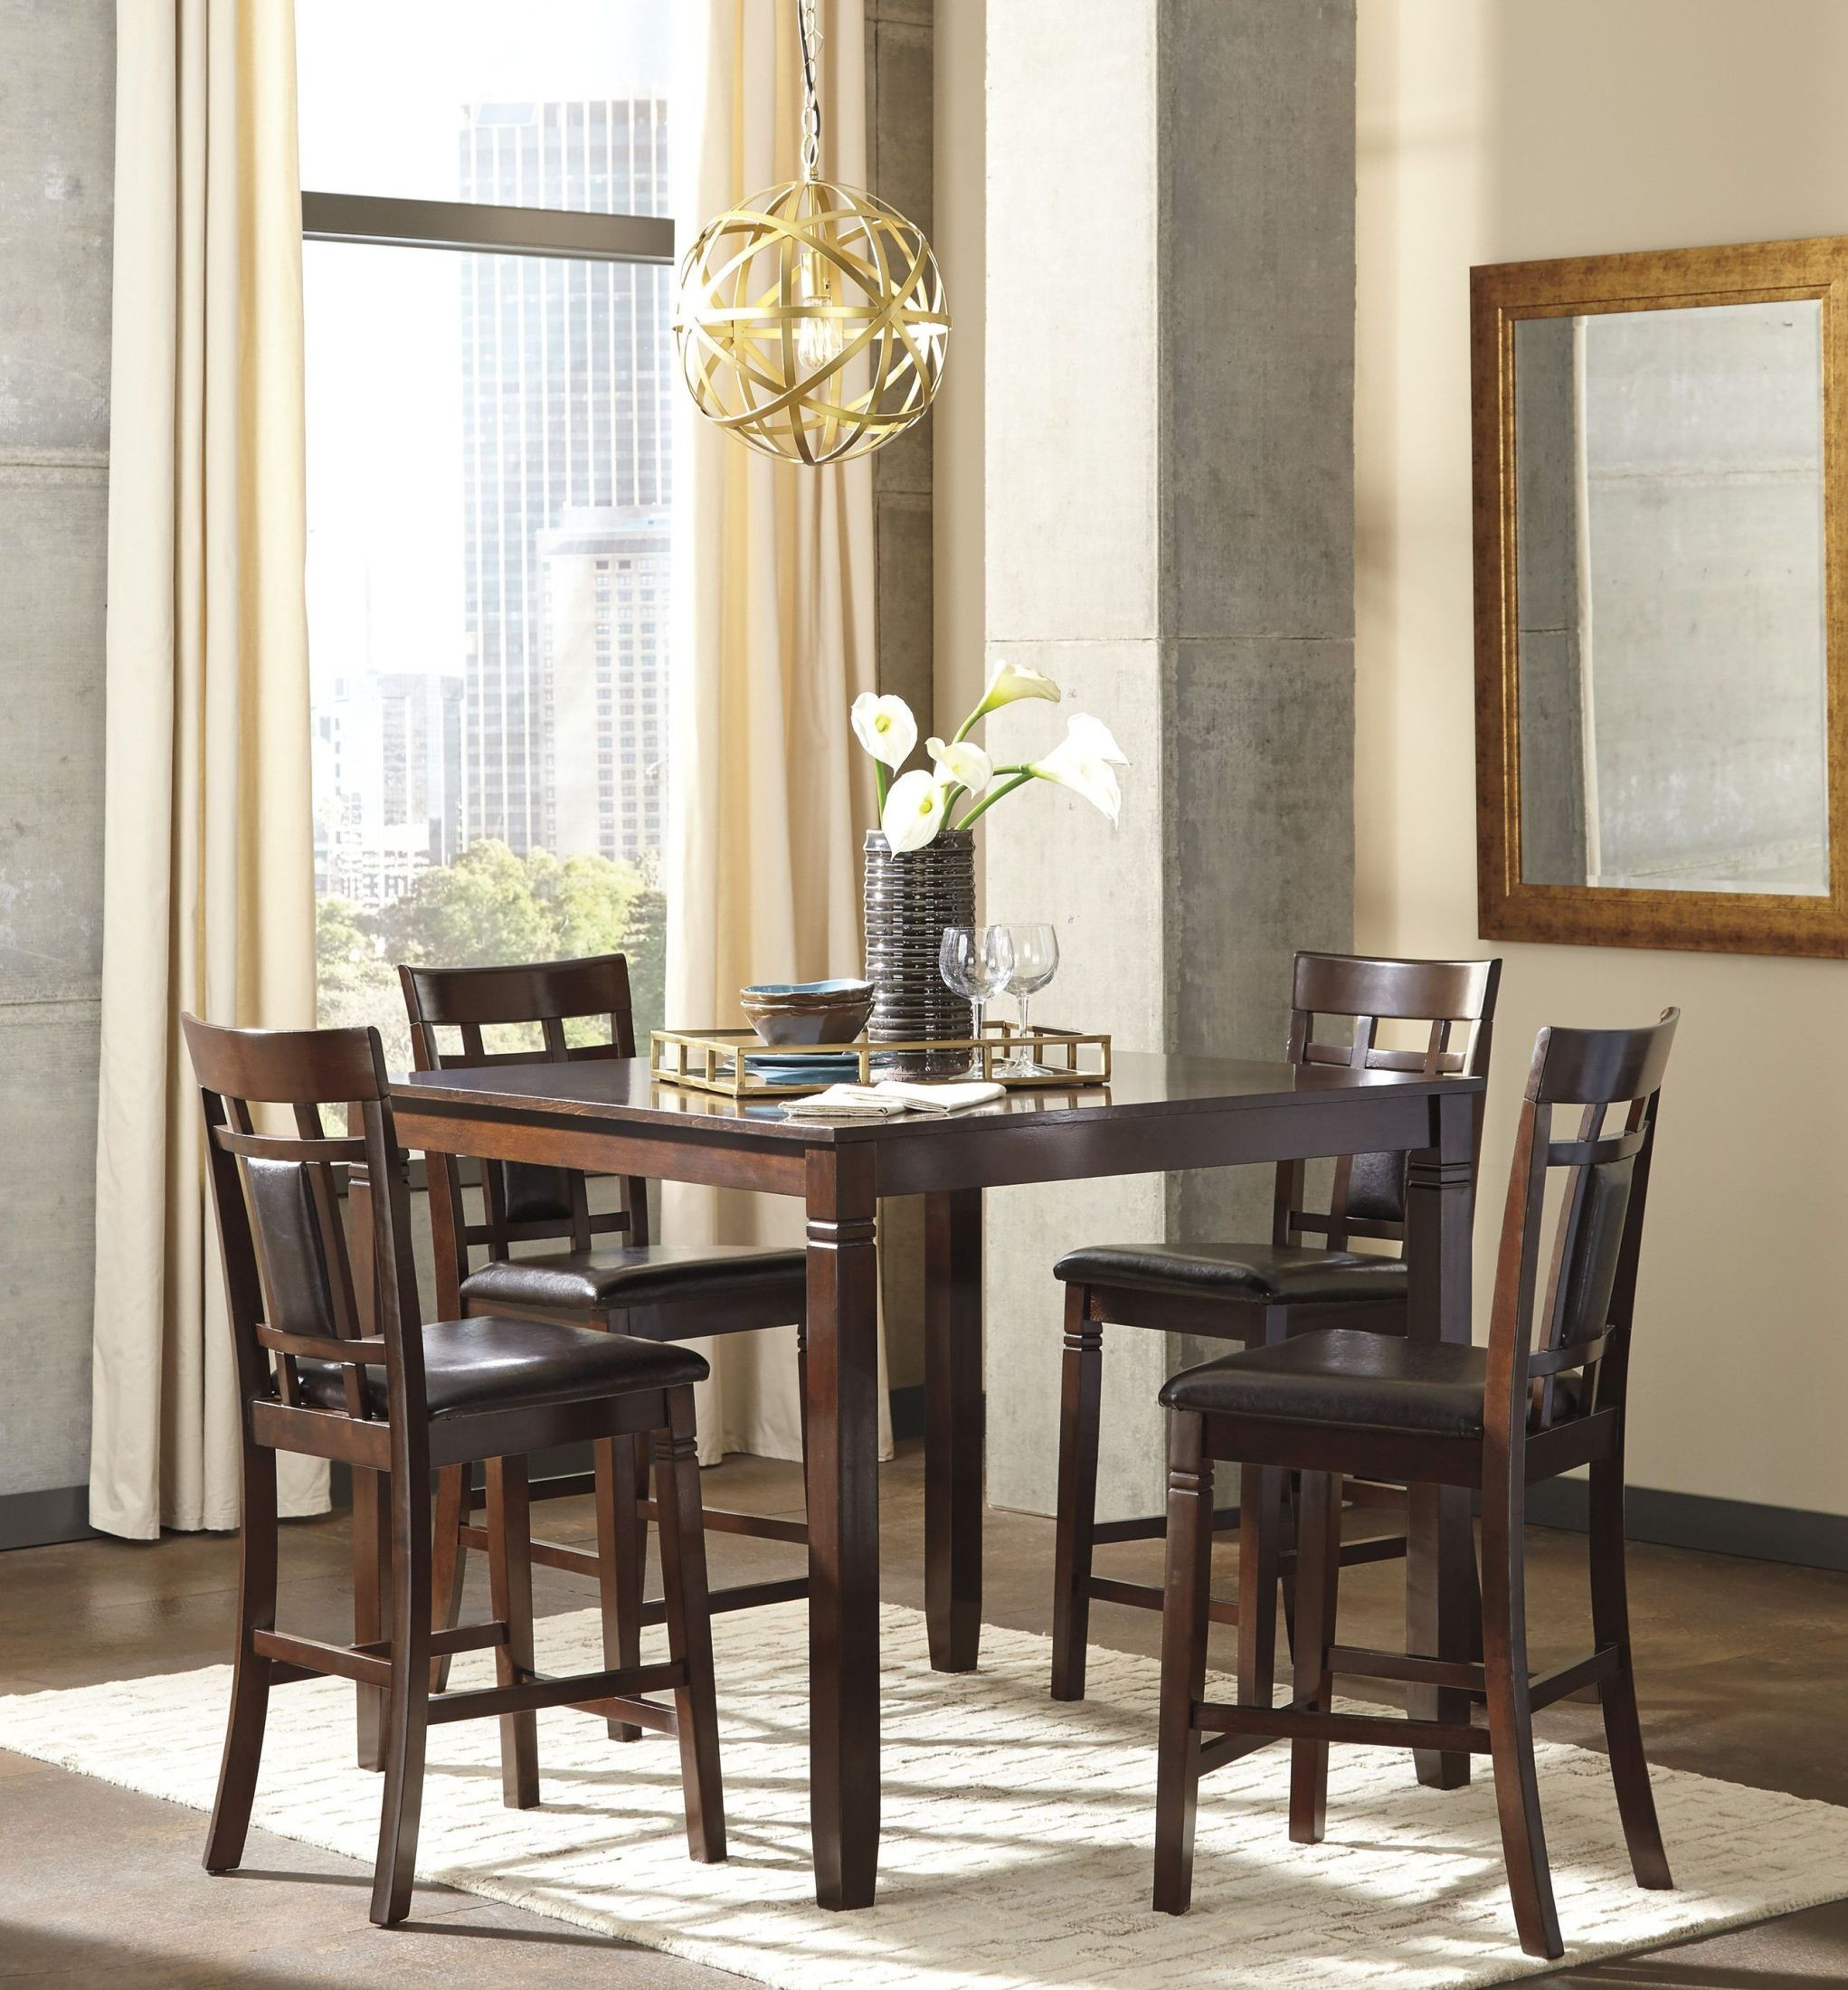 Bennox brown 5 piece counter height dining room set from for 5 piece dining room sets